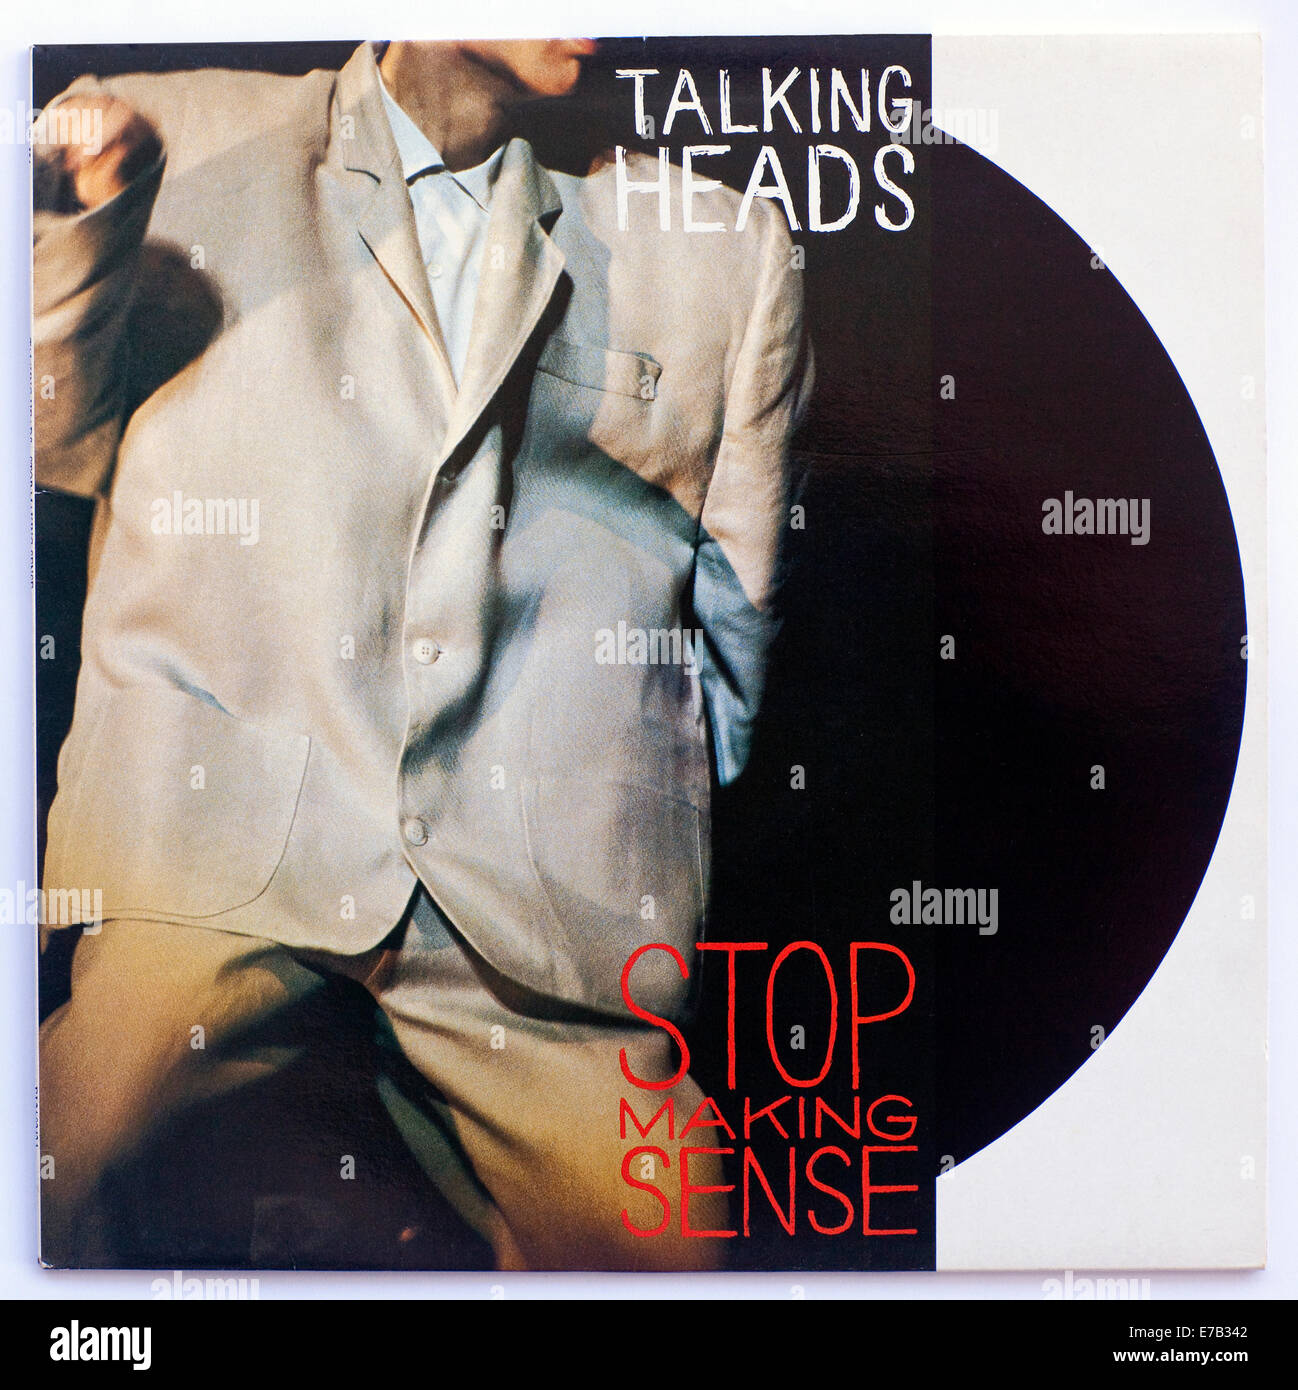 Talking Heads - Stop Making Sense 1984 film soundtrack album cover - Stock Image